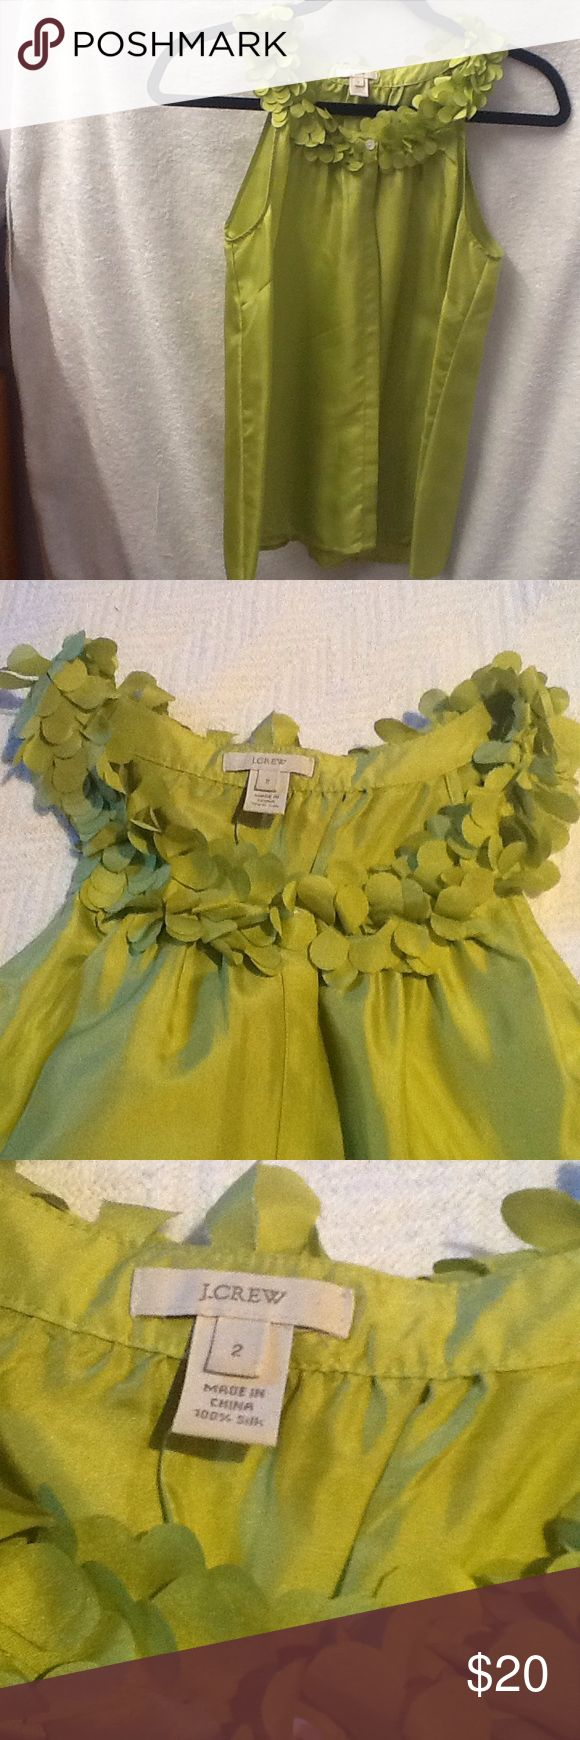 J. Crew silk top Lovely summer top in bright green with petal effect neckline. J. Crew Tops Blouses